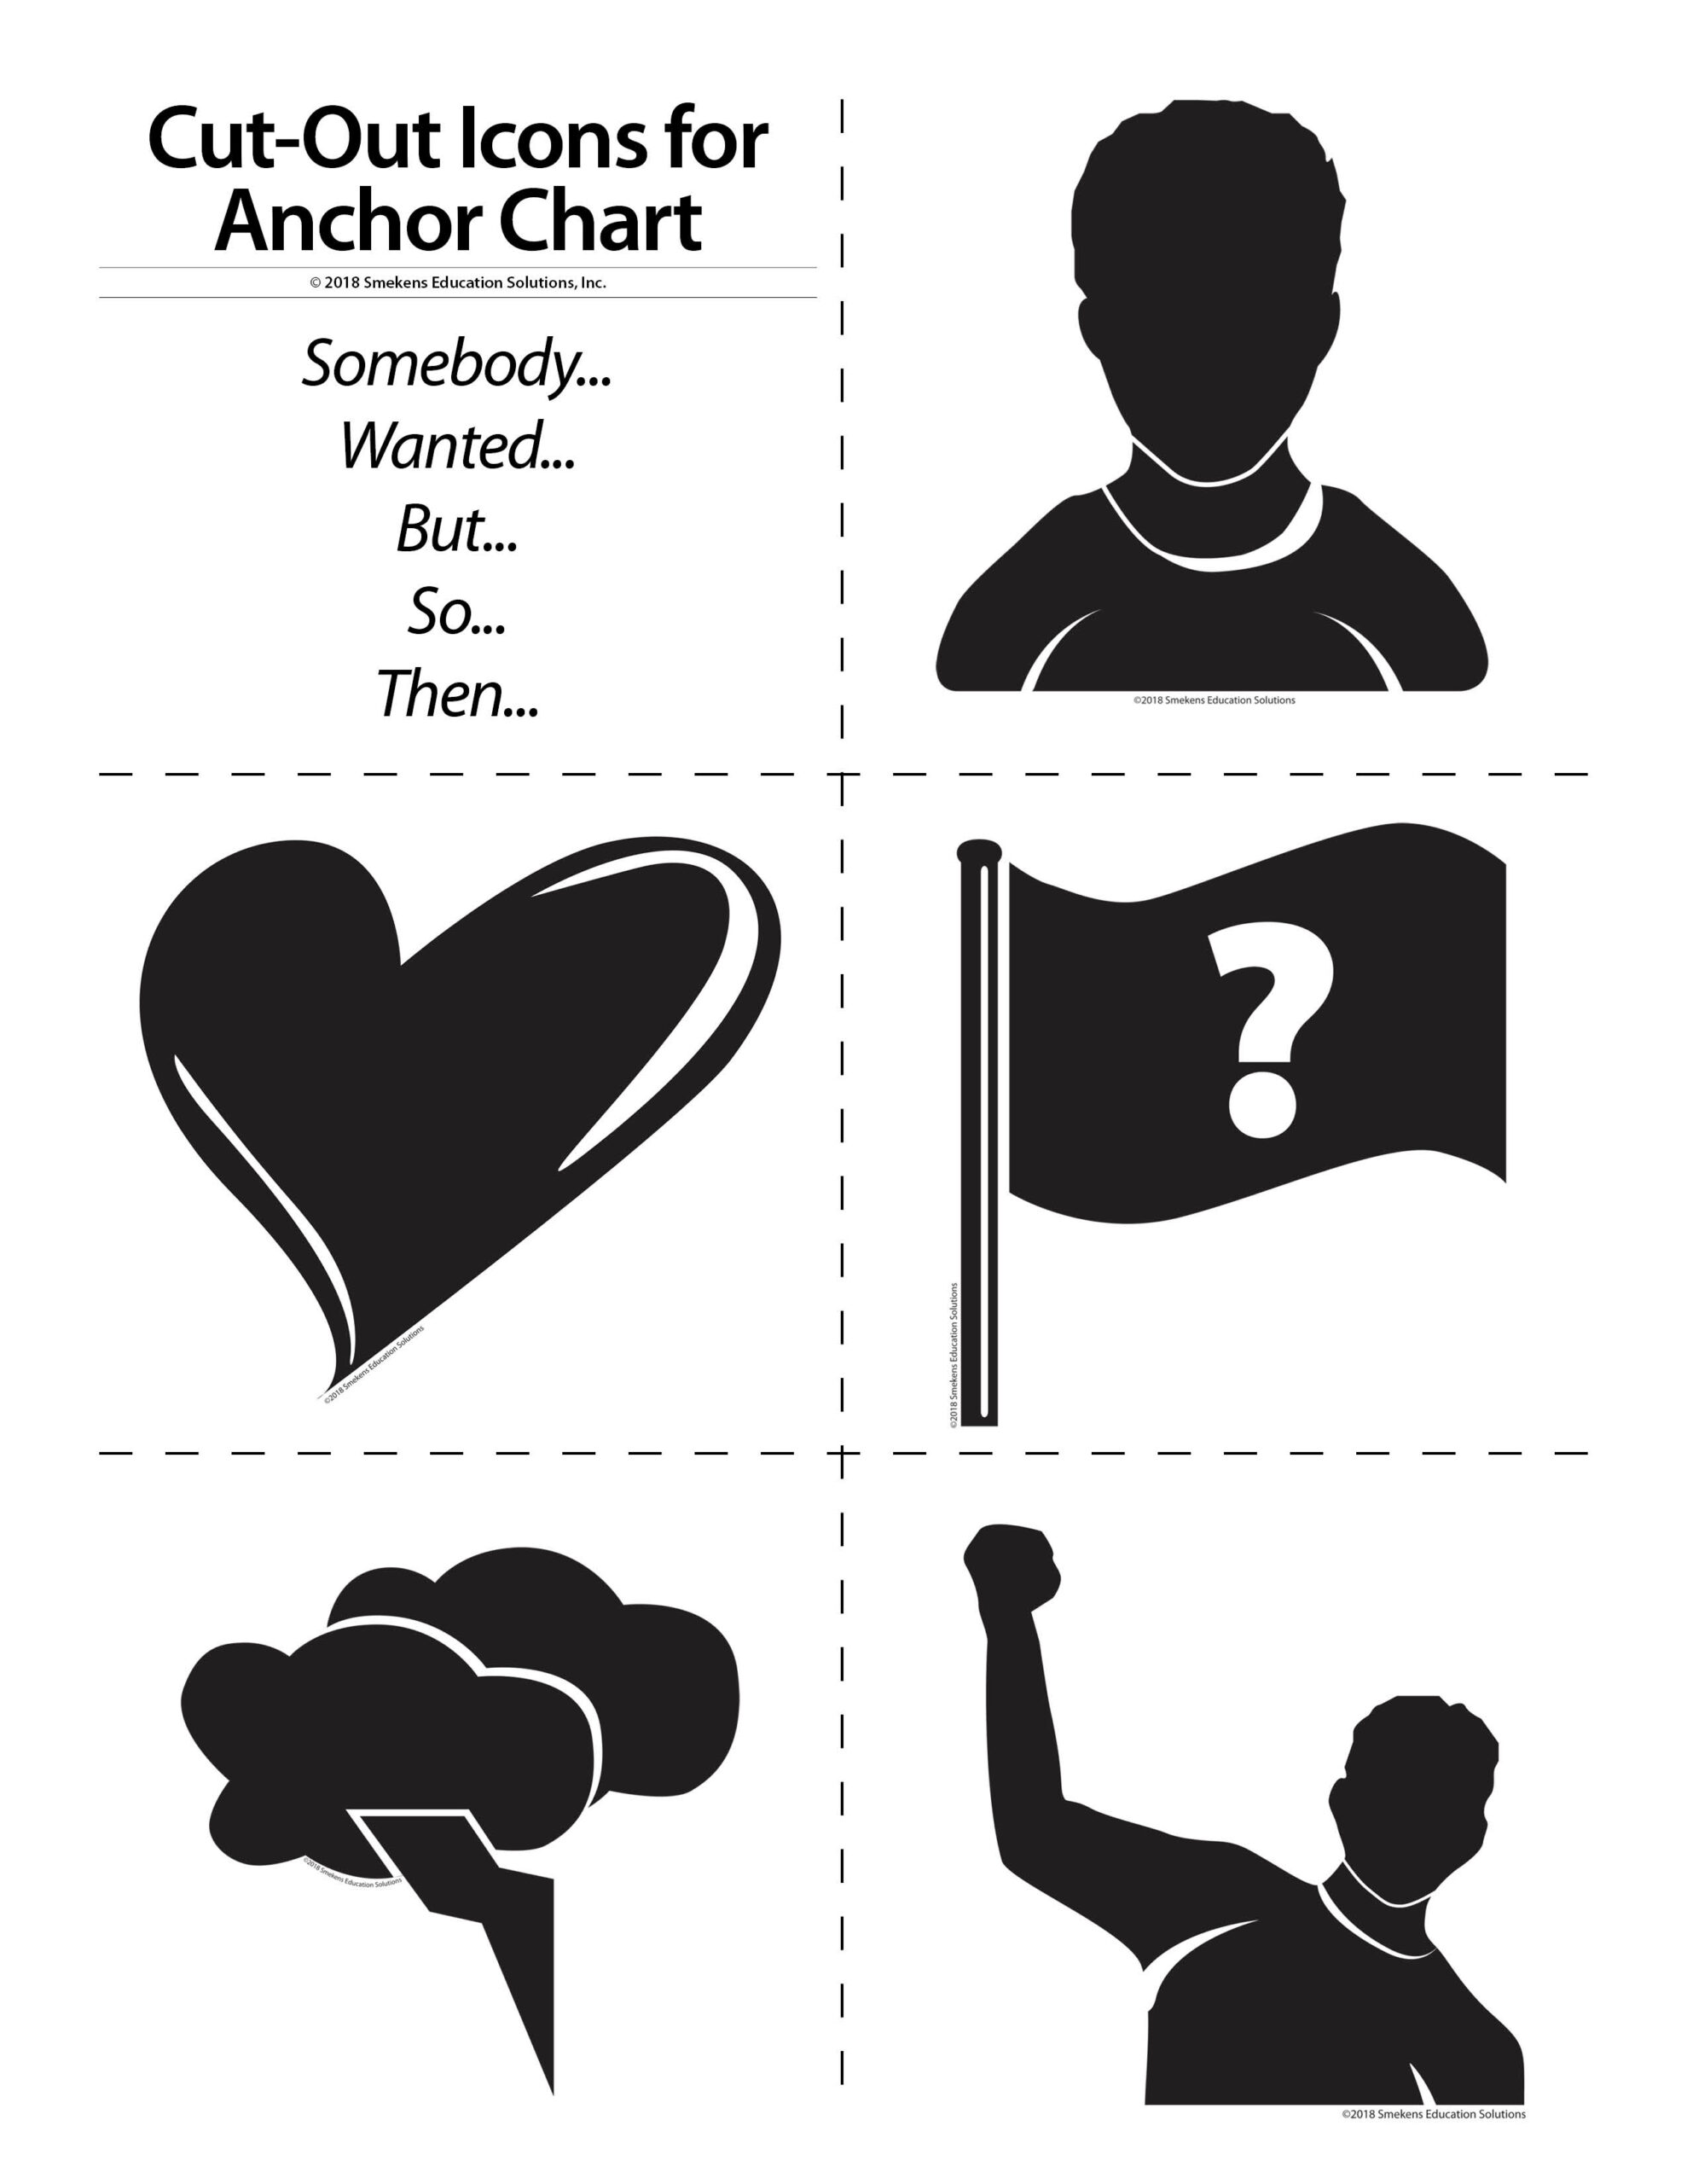 Somebody, Wanted, But, So, Then - Anchor Chart Icons 2